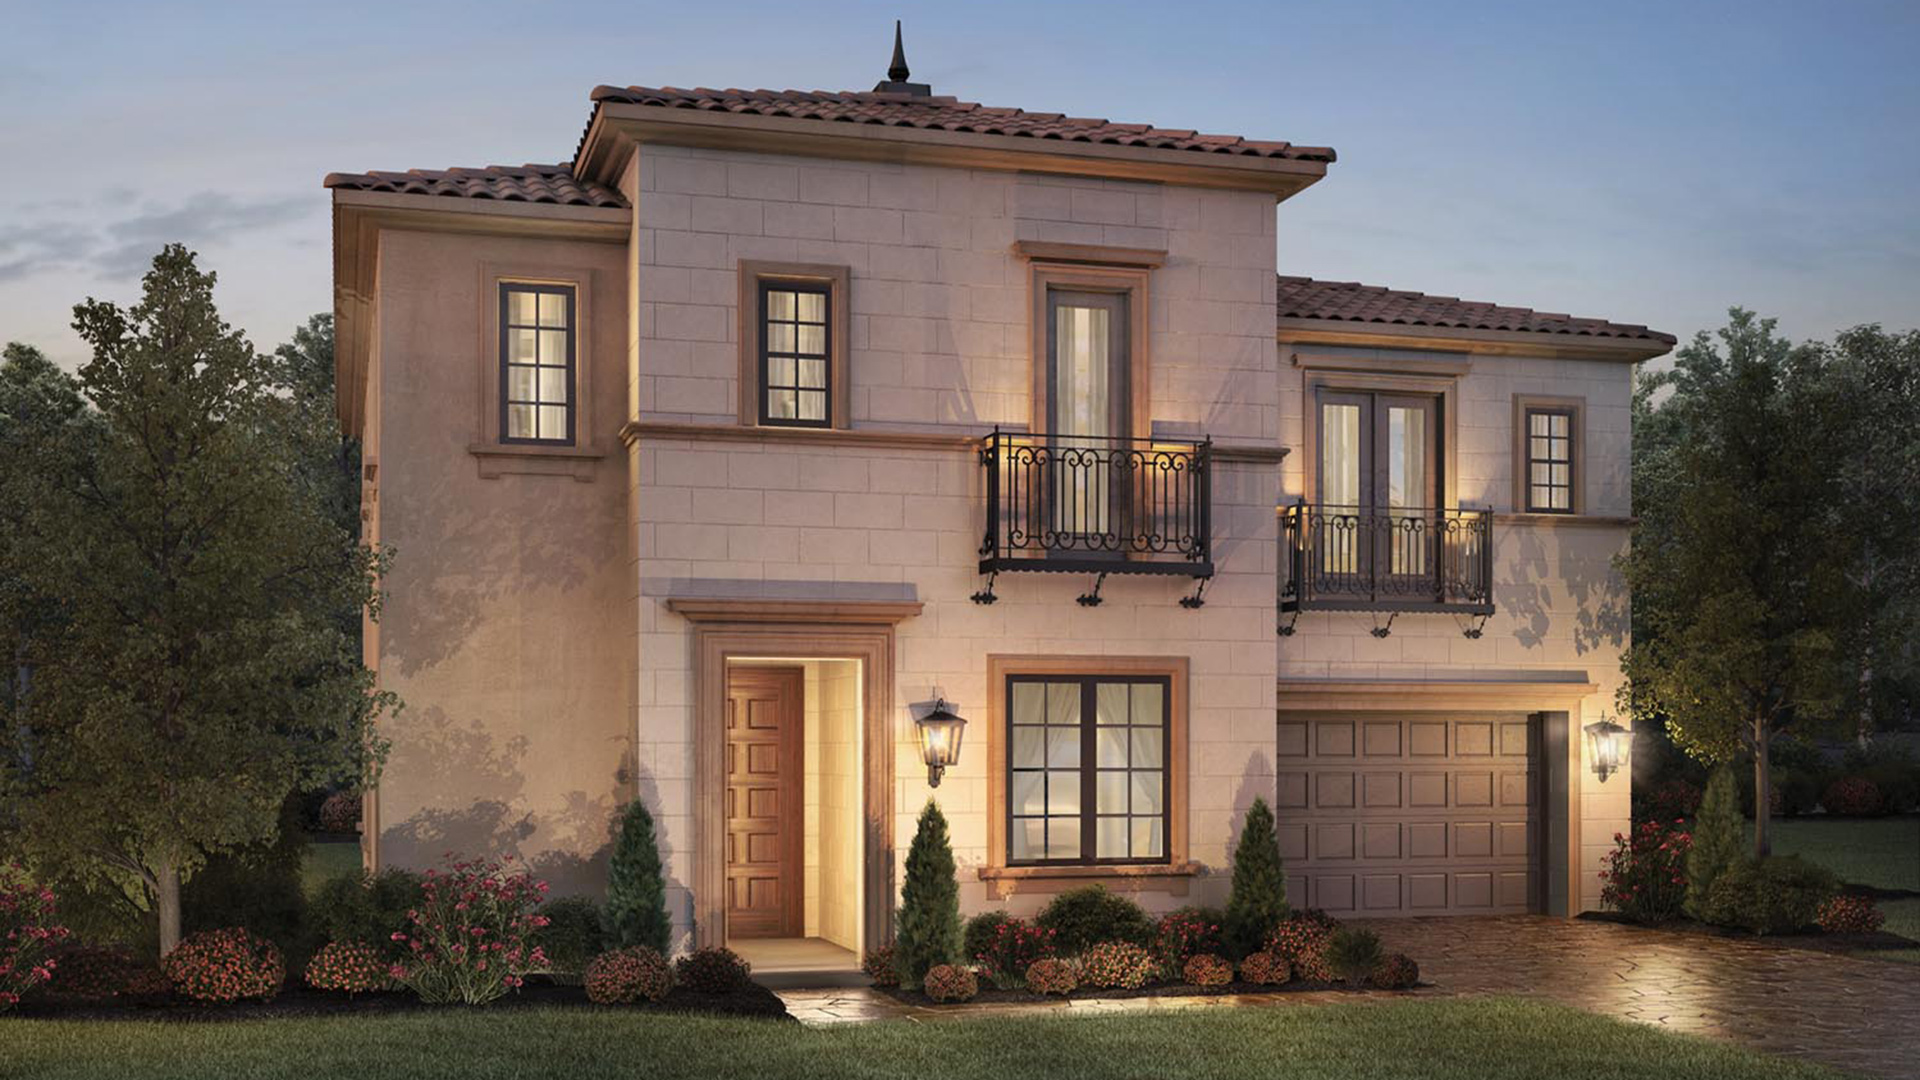 Andorra offers an exciting new community of single-family homes within the master plan community of Gale Ranch.